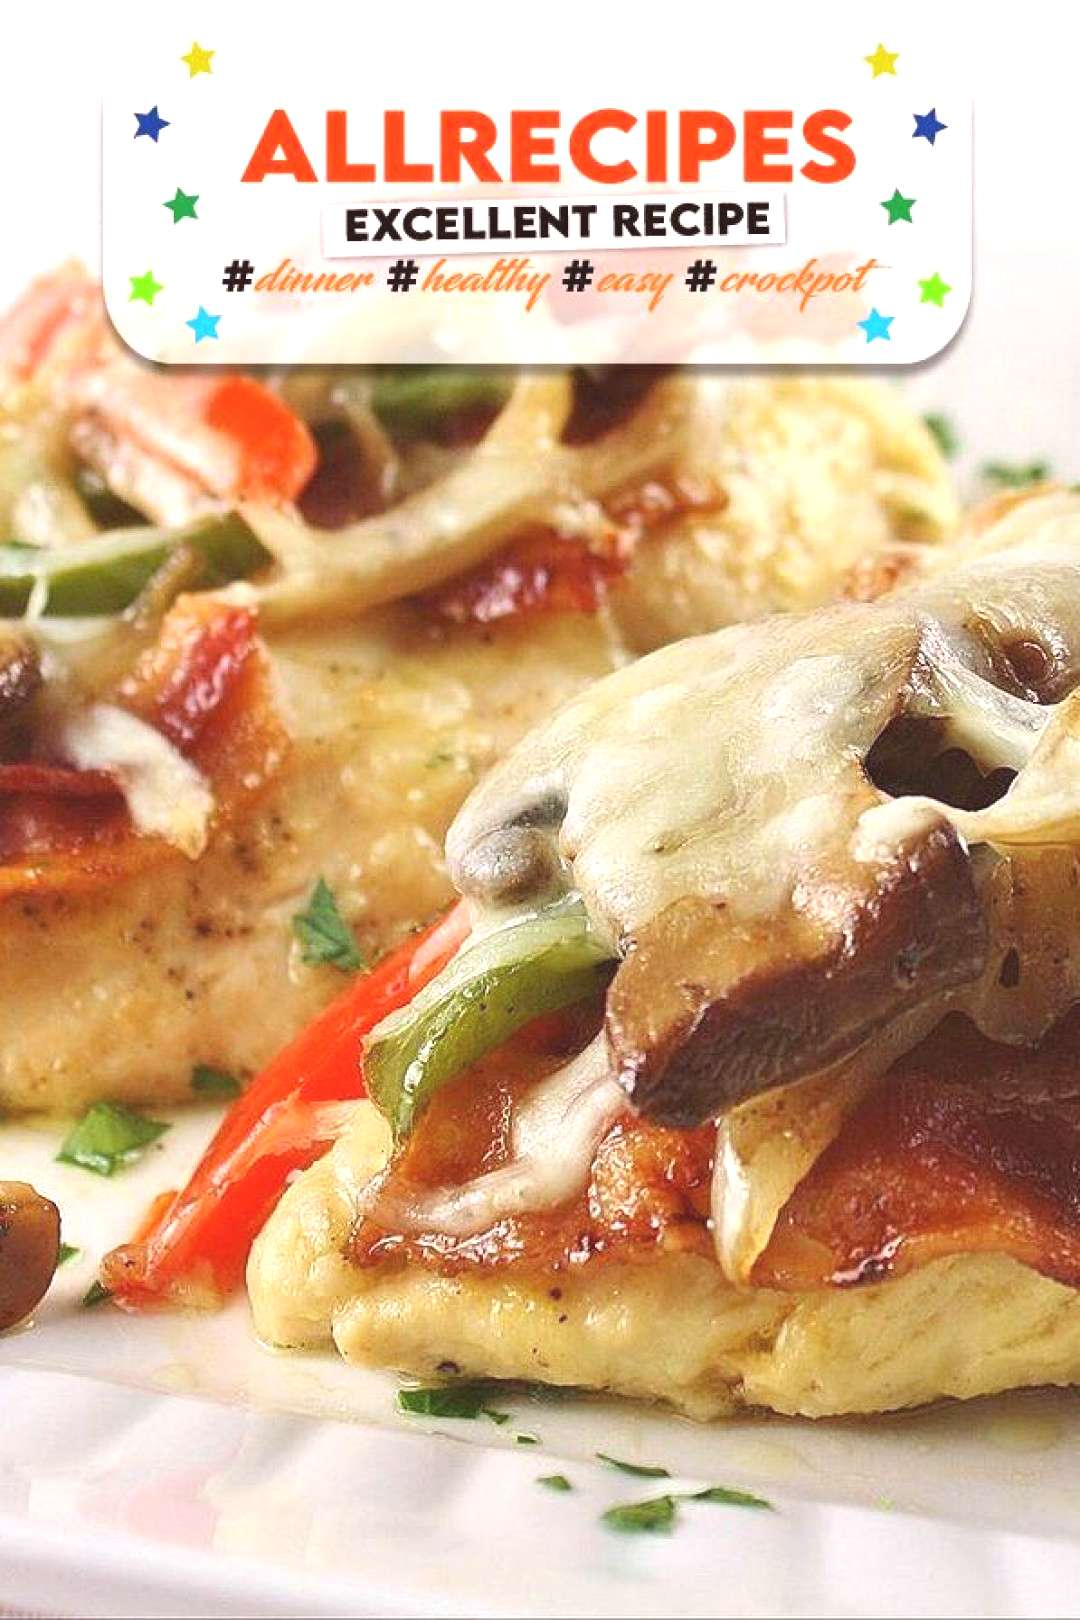 Monterey Chicken - - Monterey Chicken |